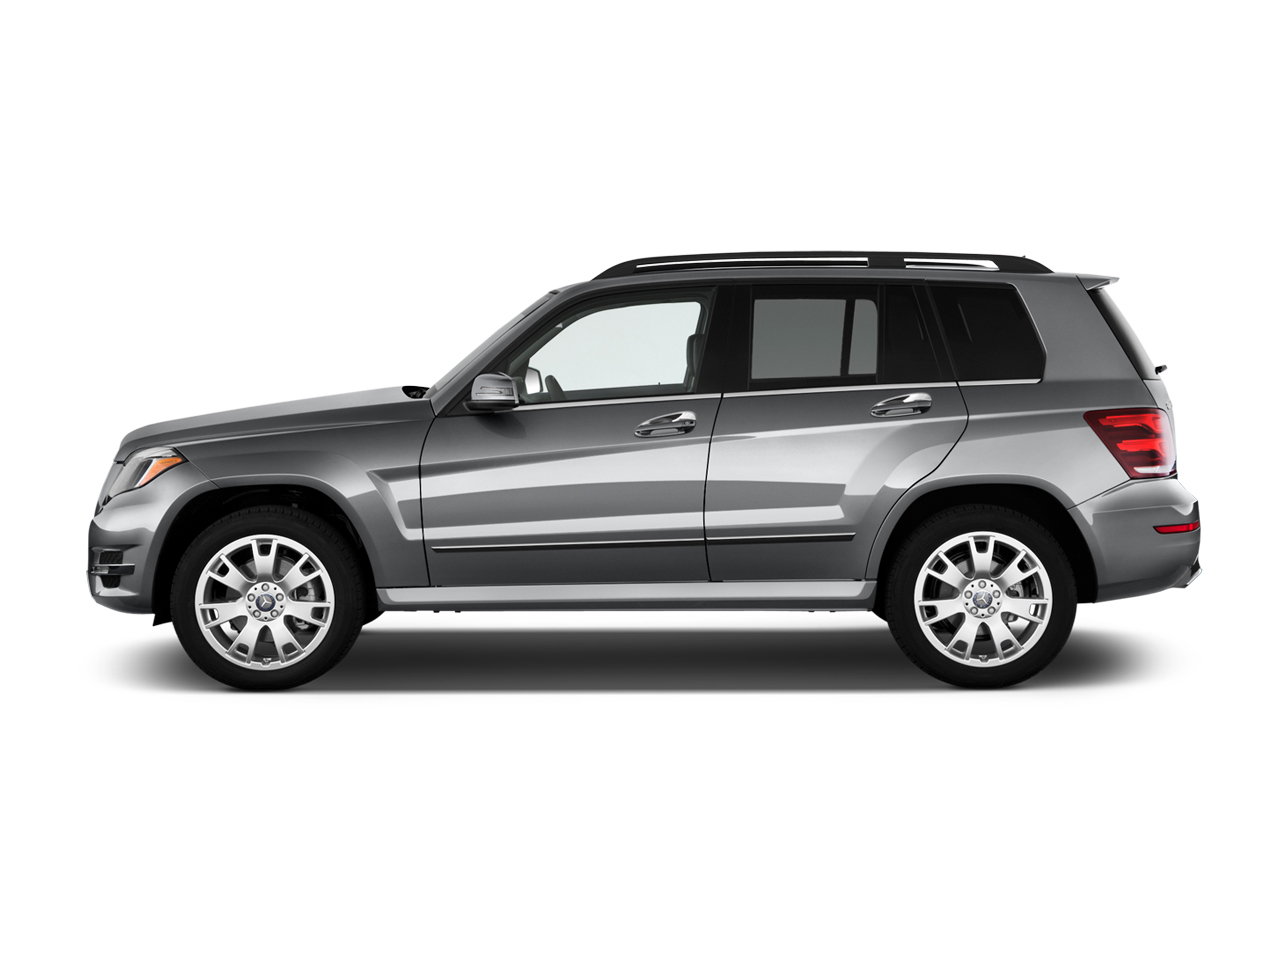 mercedes glk 350 reviews 2015 release date price and specs. Black Bedroom Furniture Sets. Home Design Ideas